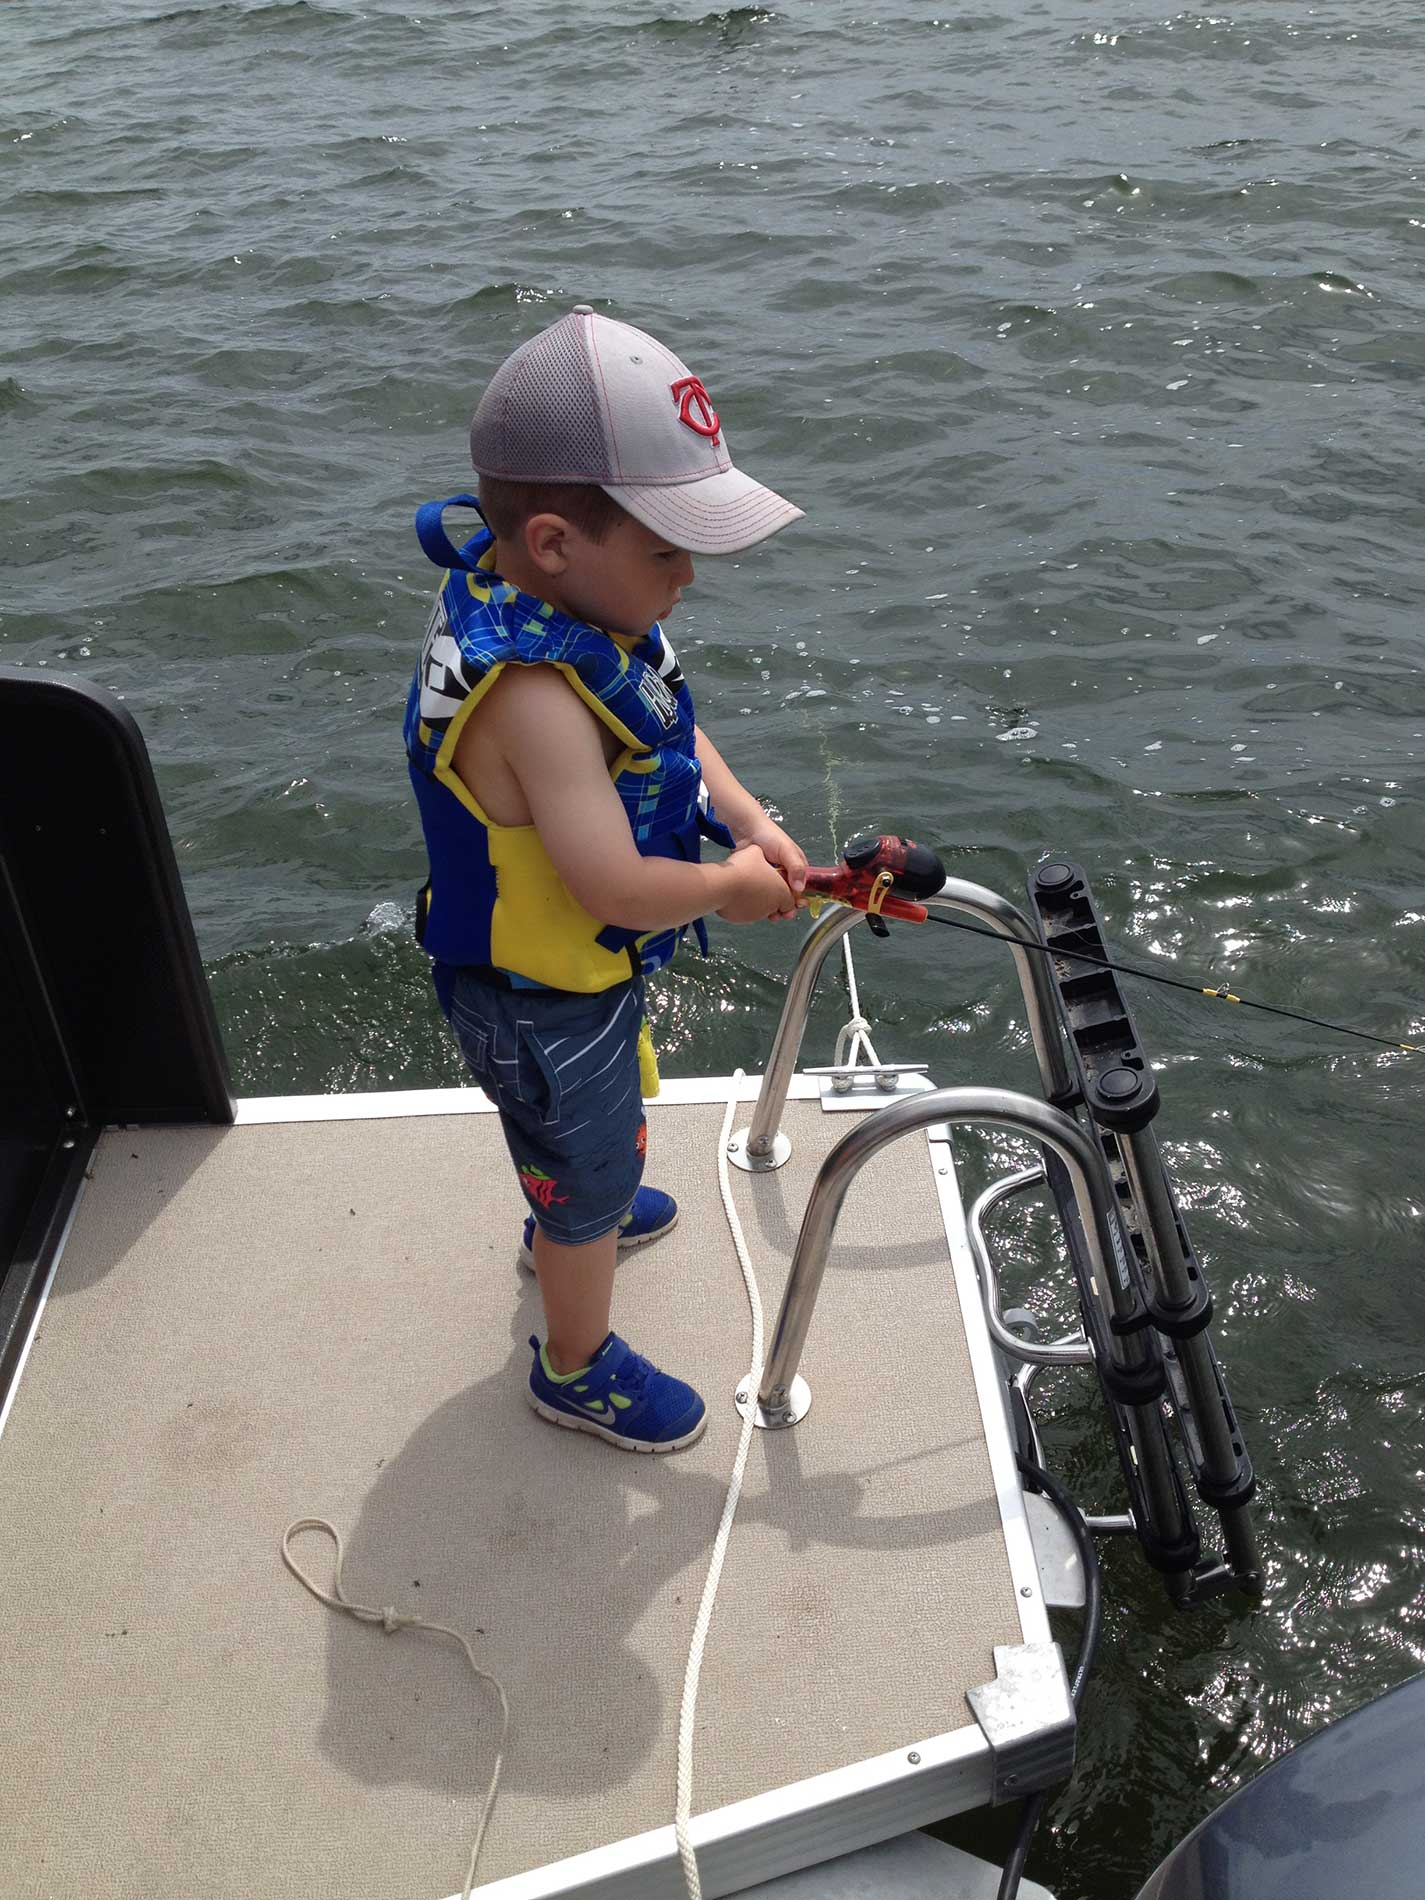 Reese fishing off of the pontoon during the summer of 2014.